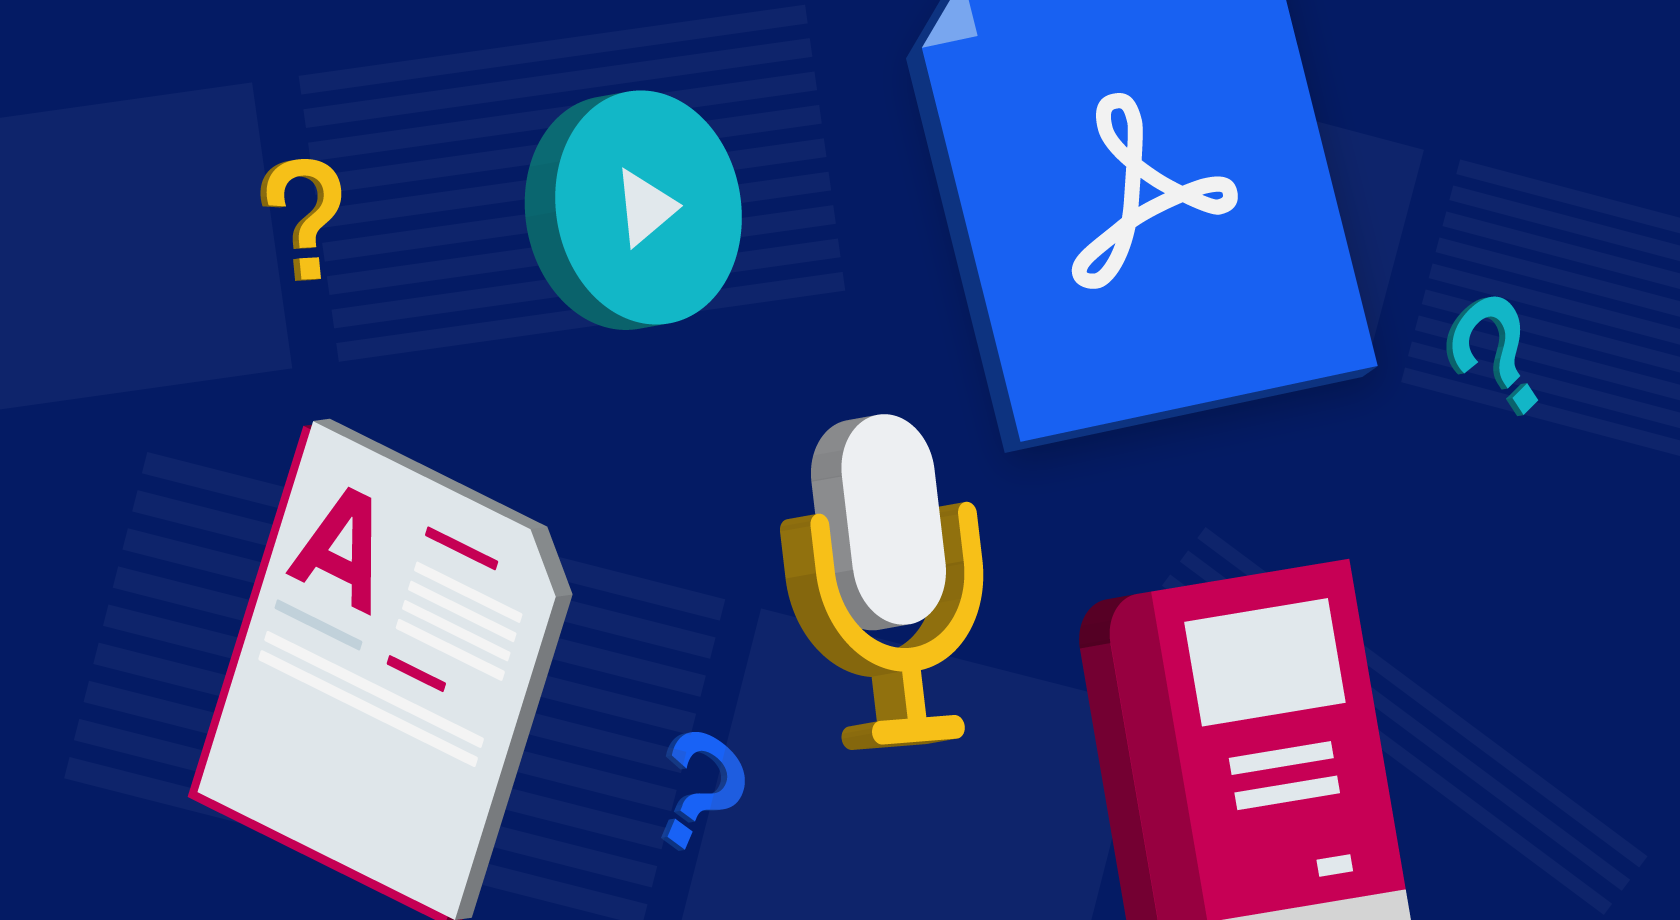 Symbols to represent various pieces of content: PDFs, podcasts, blog posts, video